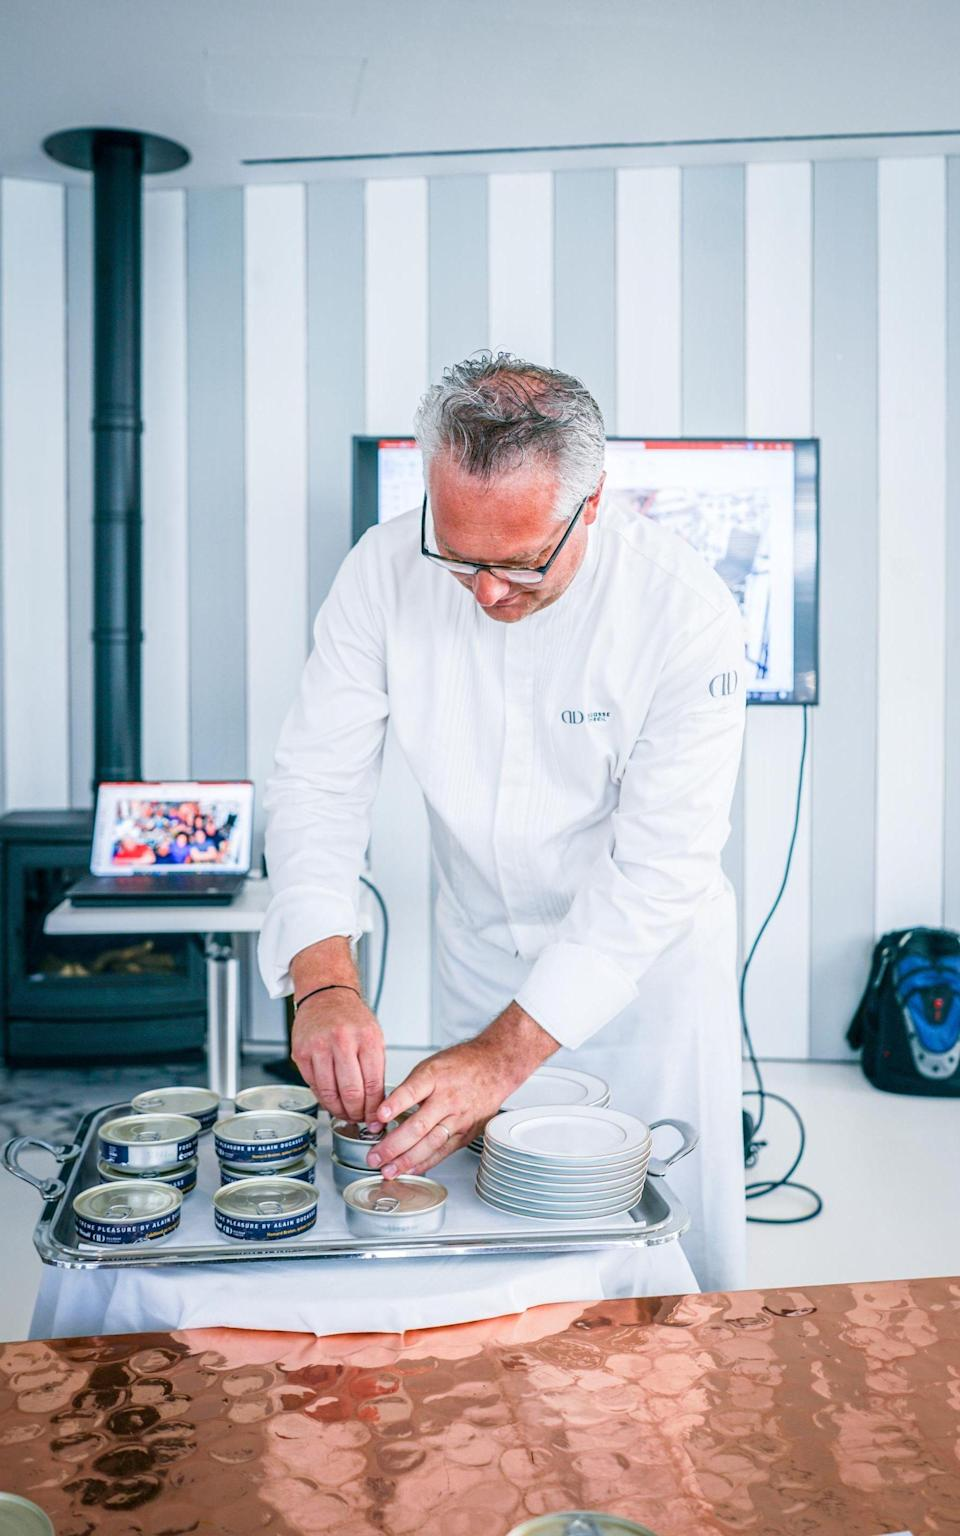 A chef demonstrates how tinned meals are made for the International Space Station